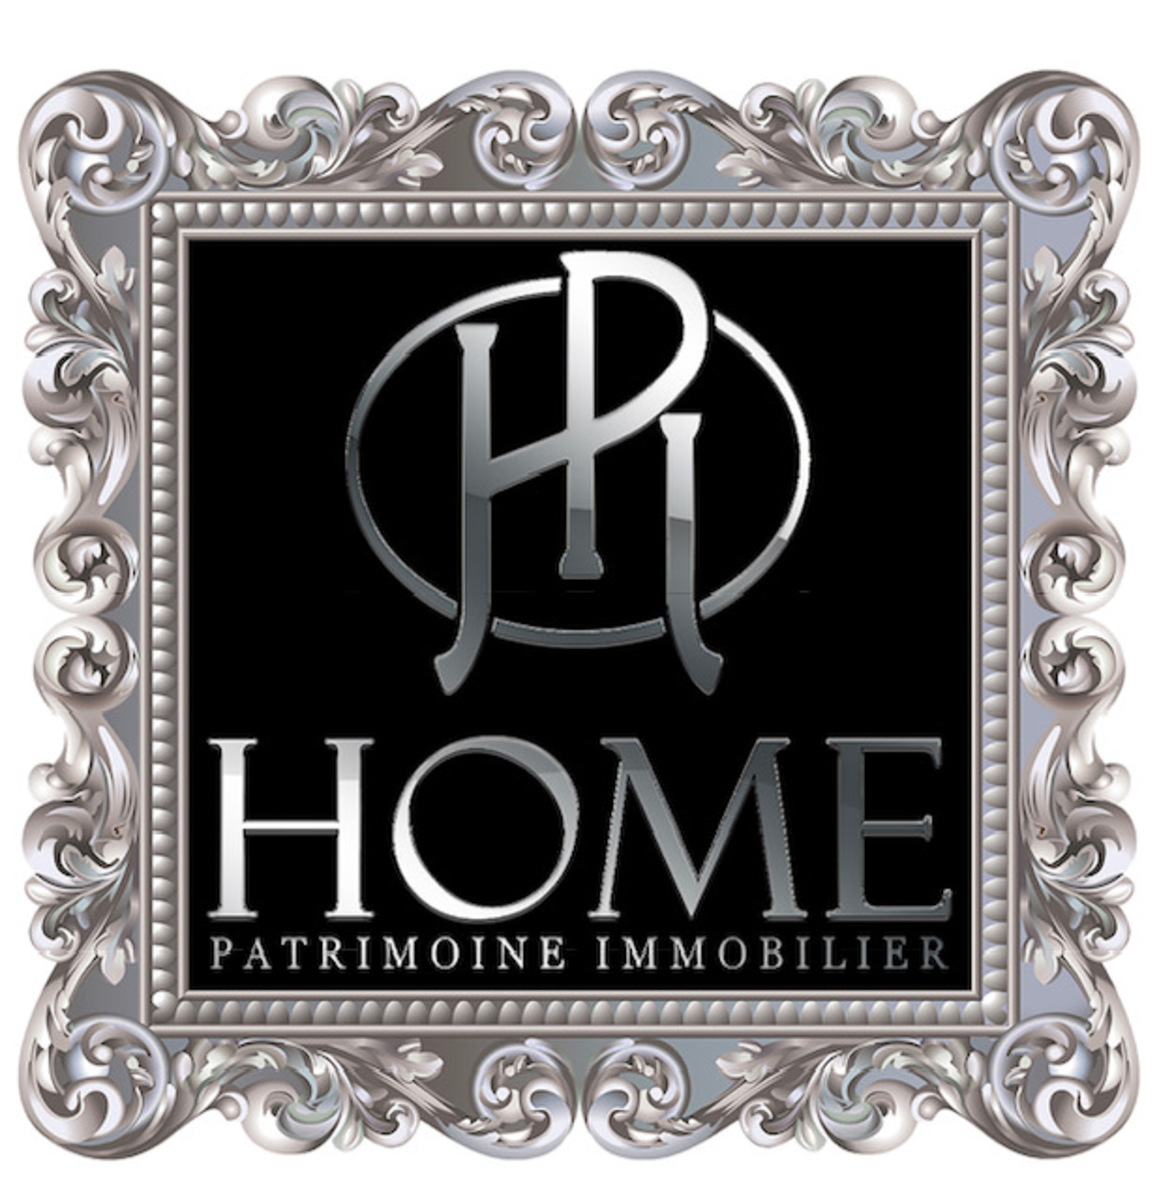 Patrimoine Immobilier Estate Agency Of Aveyron Specializing In Property In Rodez Home